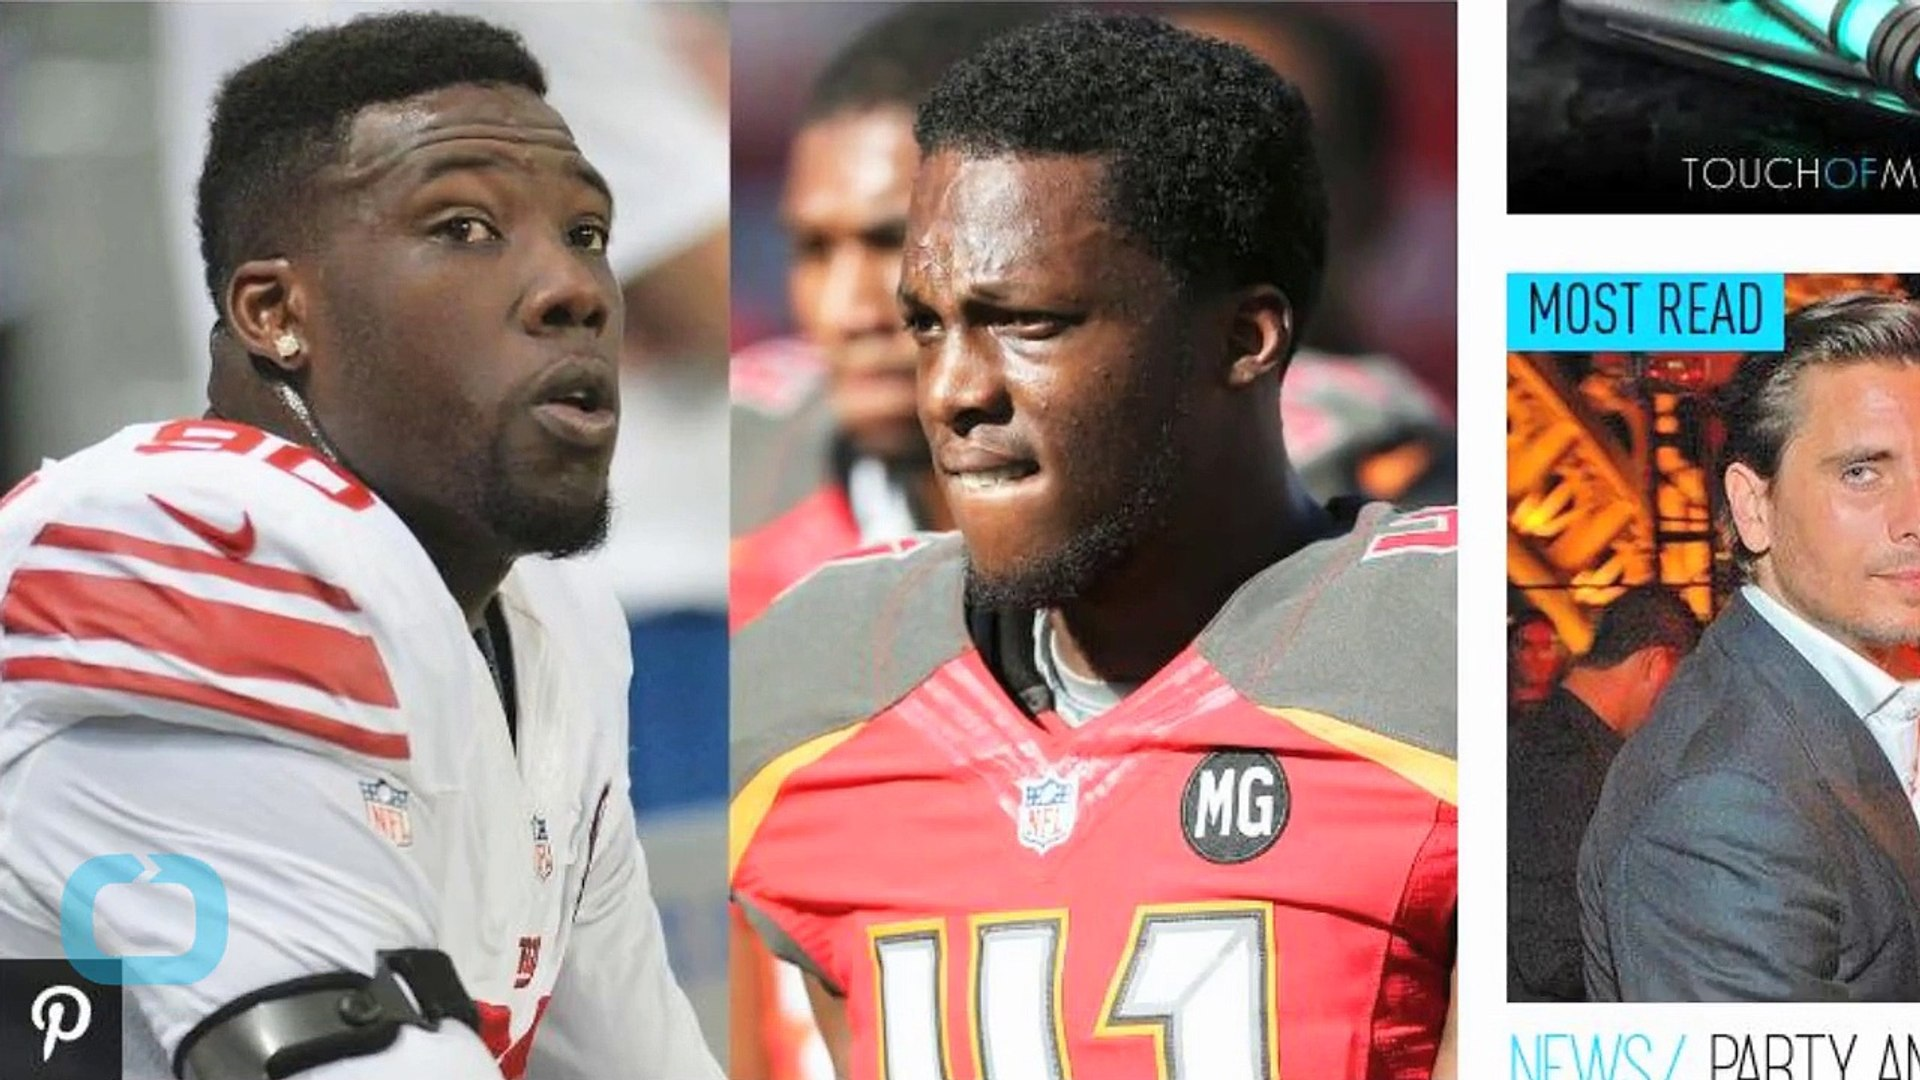 NFL Players Jason Pierre-Paul and C.J. Wilson Each Get Fingers Amputated Following Firework Accident